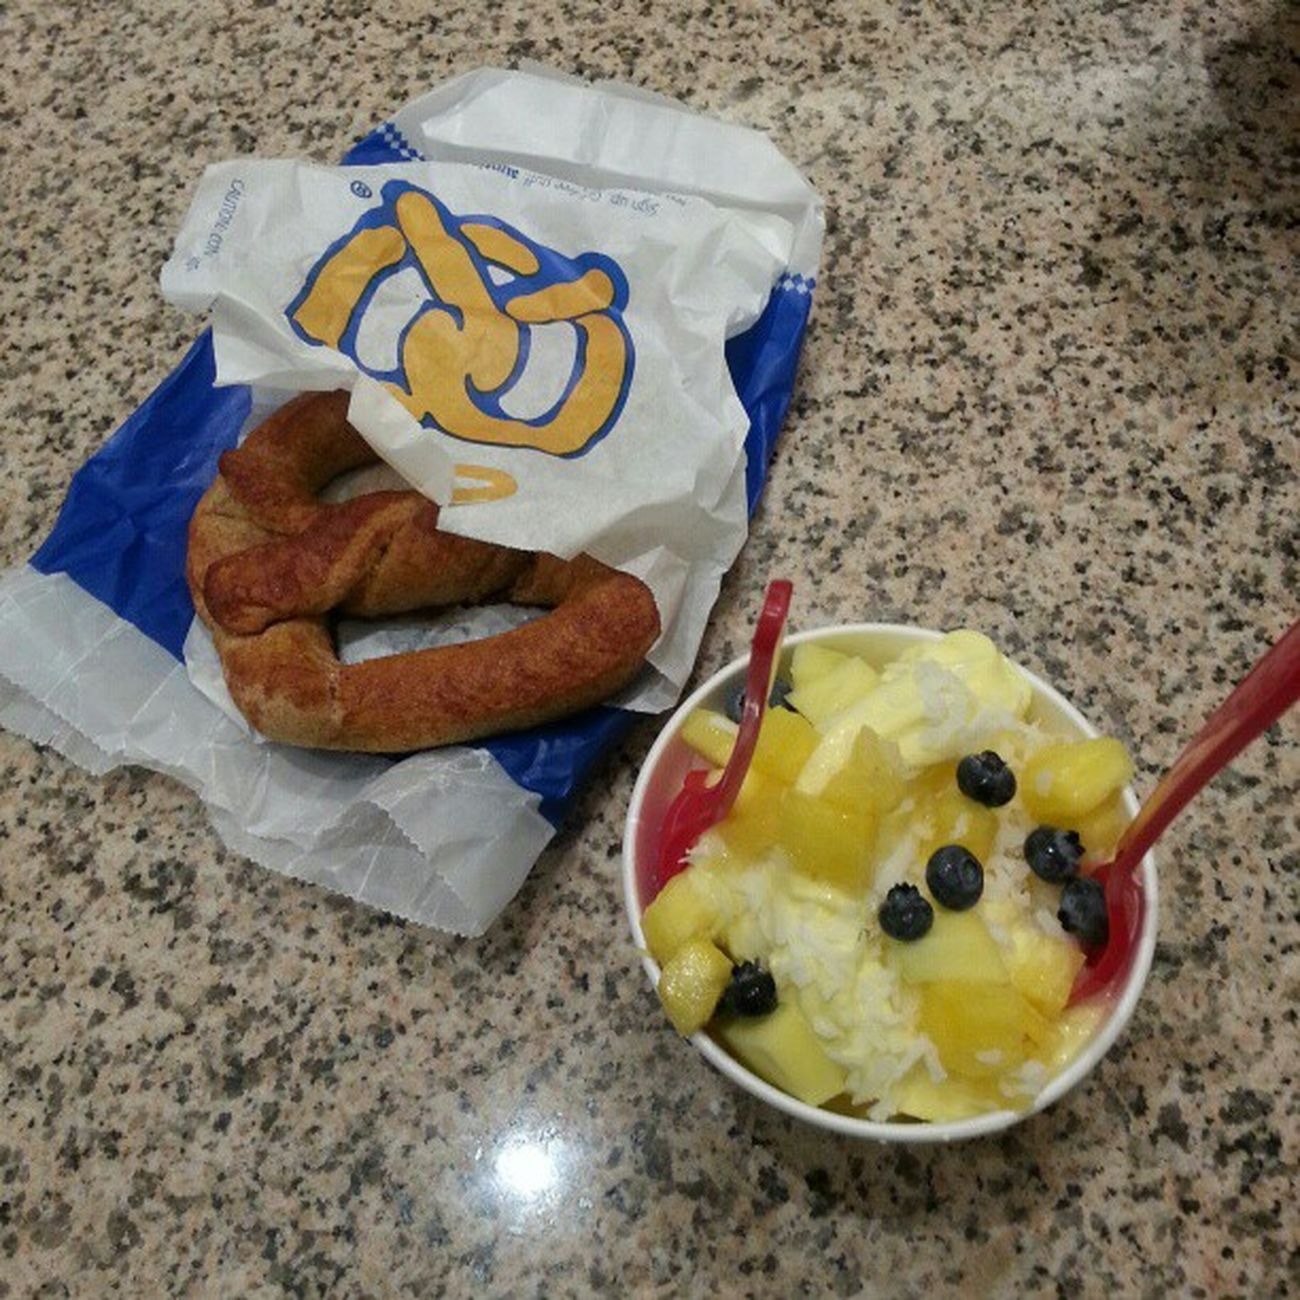 Nom nom nom. Redmango Mango Yogurt with pineapple blueberries coconut shavings and auntieannes pretzel with my girl eno..